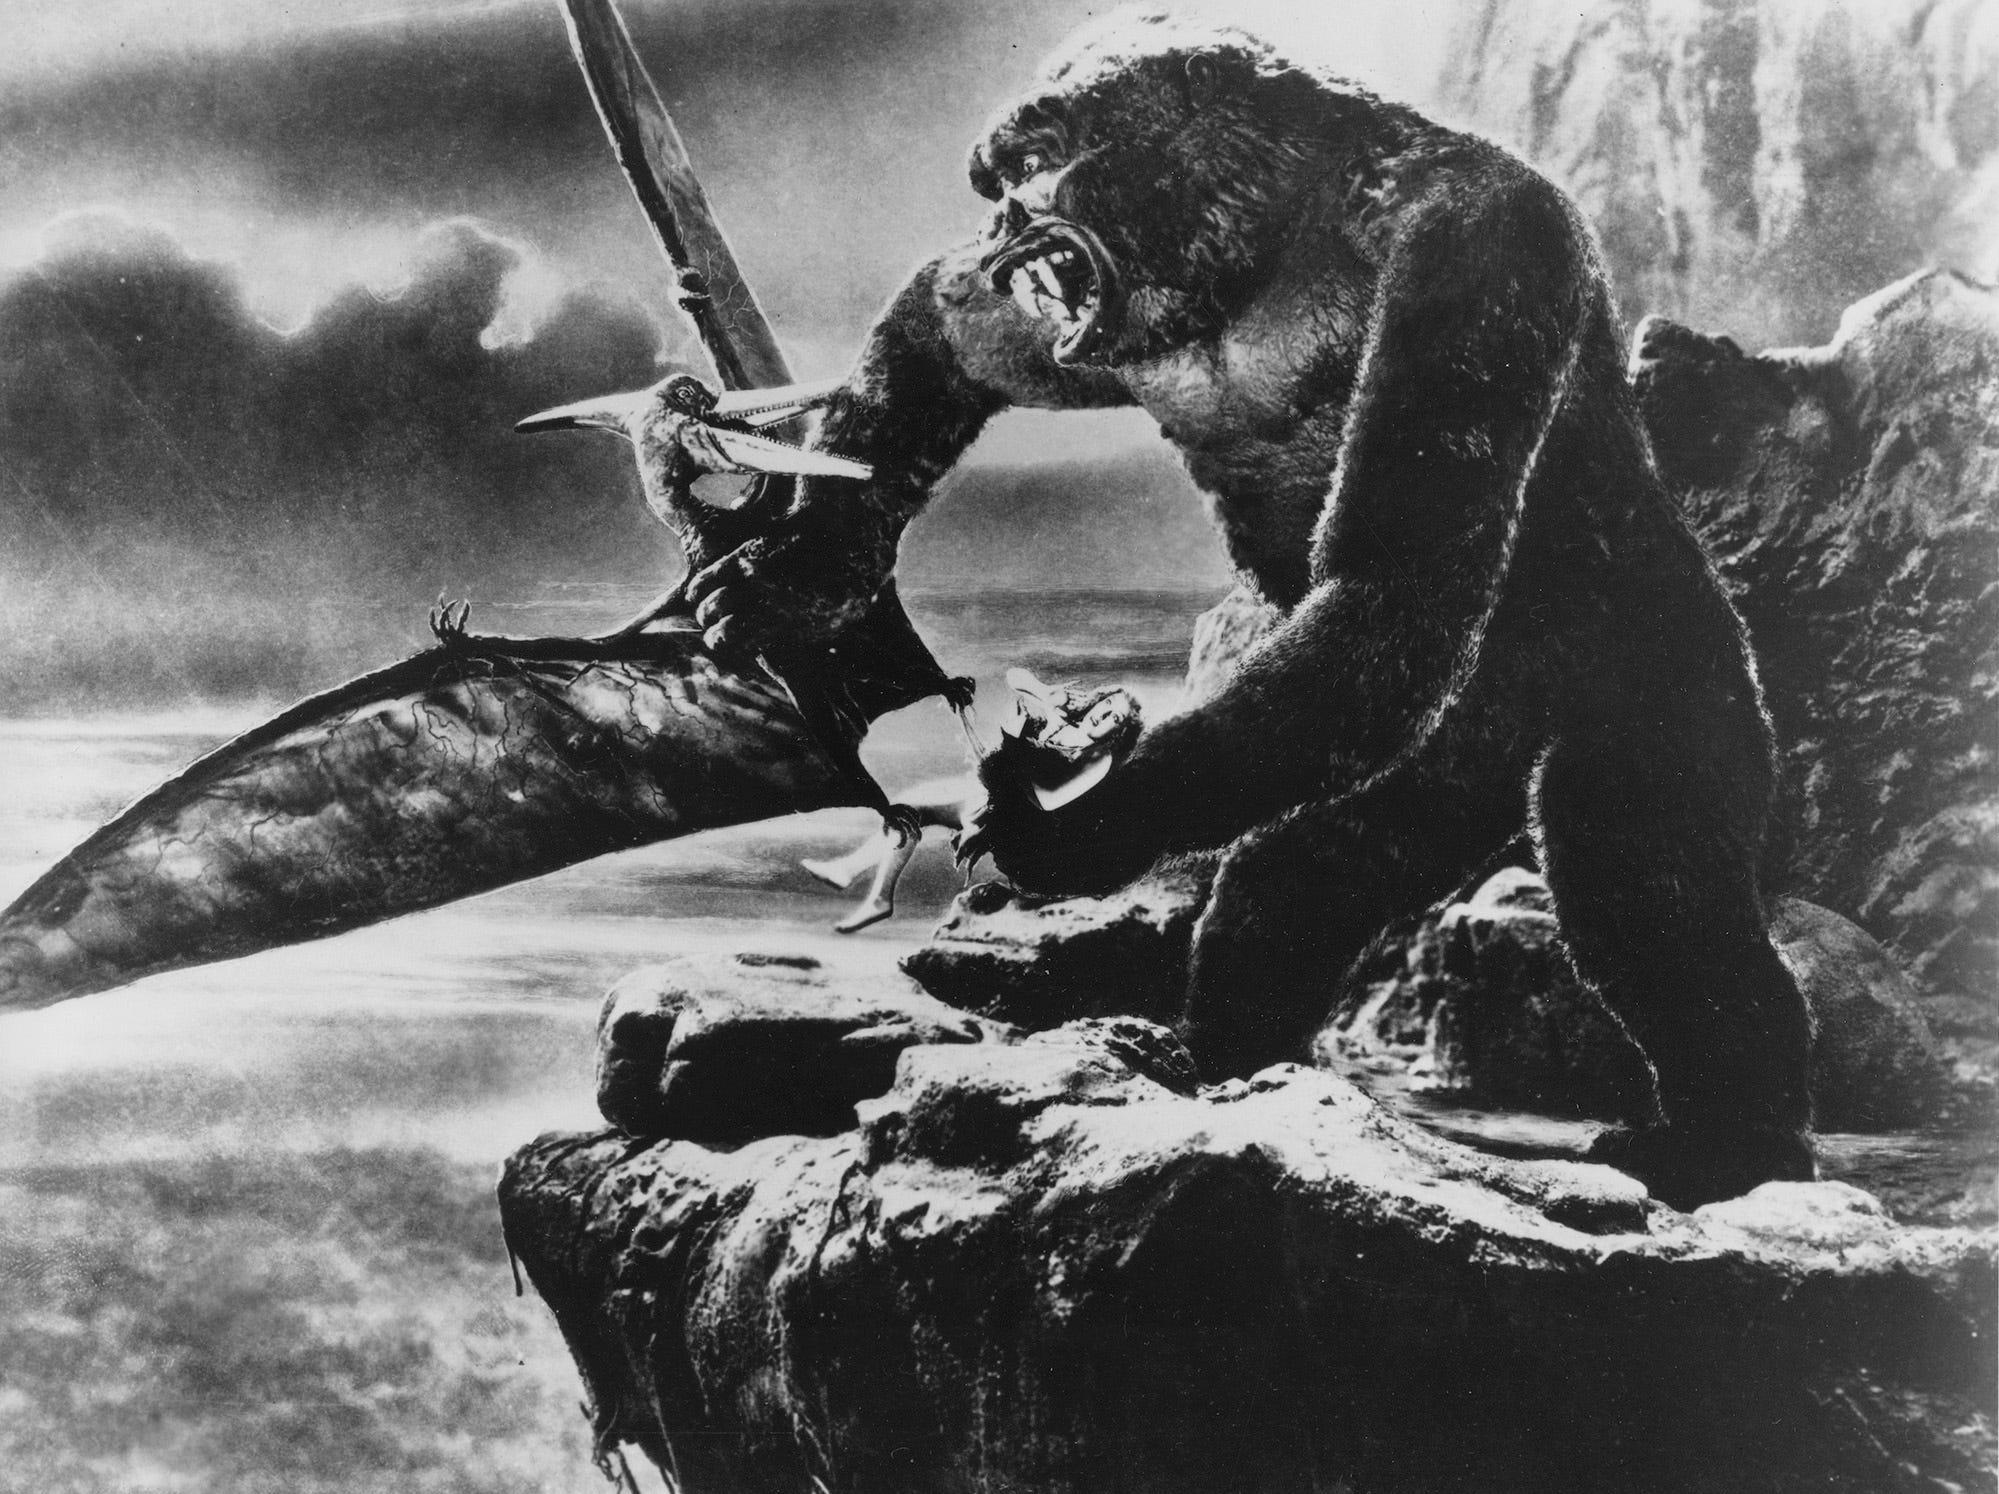 """**FILE**King Kong battles a prehistoric pteradactyl with one hand as he holds actress Fay Wray captive in the other hand in a scene from the 1933 film """"King Kong."""" Wray, 96, died Sunday, Aug.8, 2004,  at her Manhattan apartment, said Rick McKay, a friend and director of the last film she appeared in.(AP Photo)"""